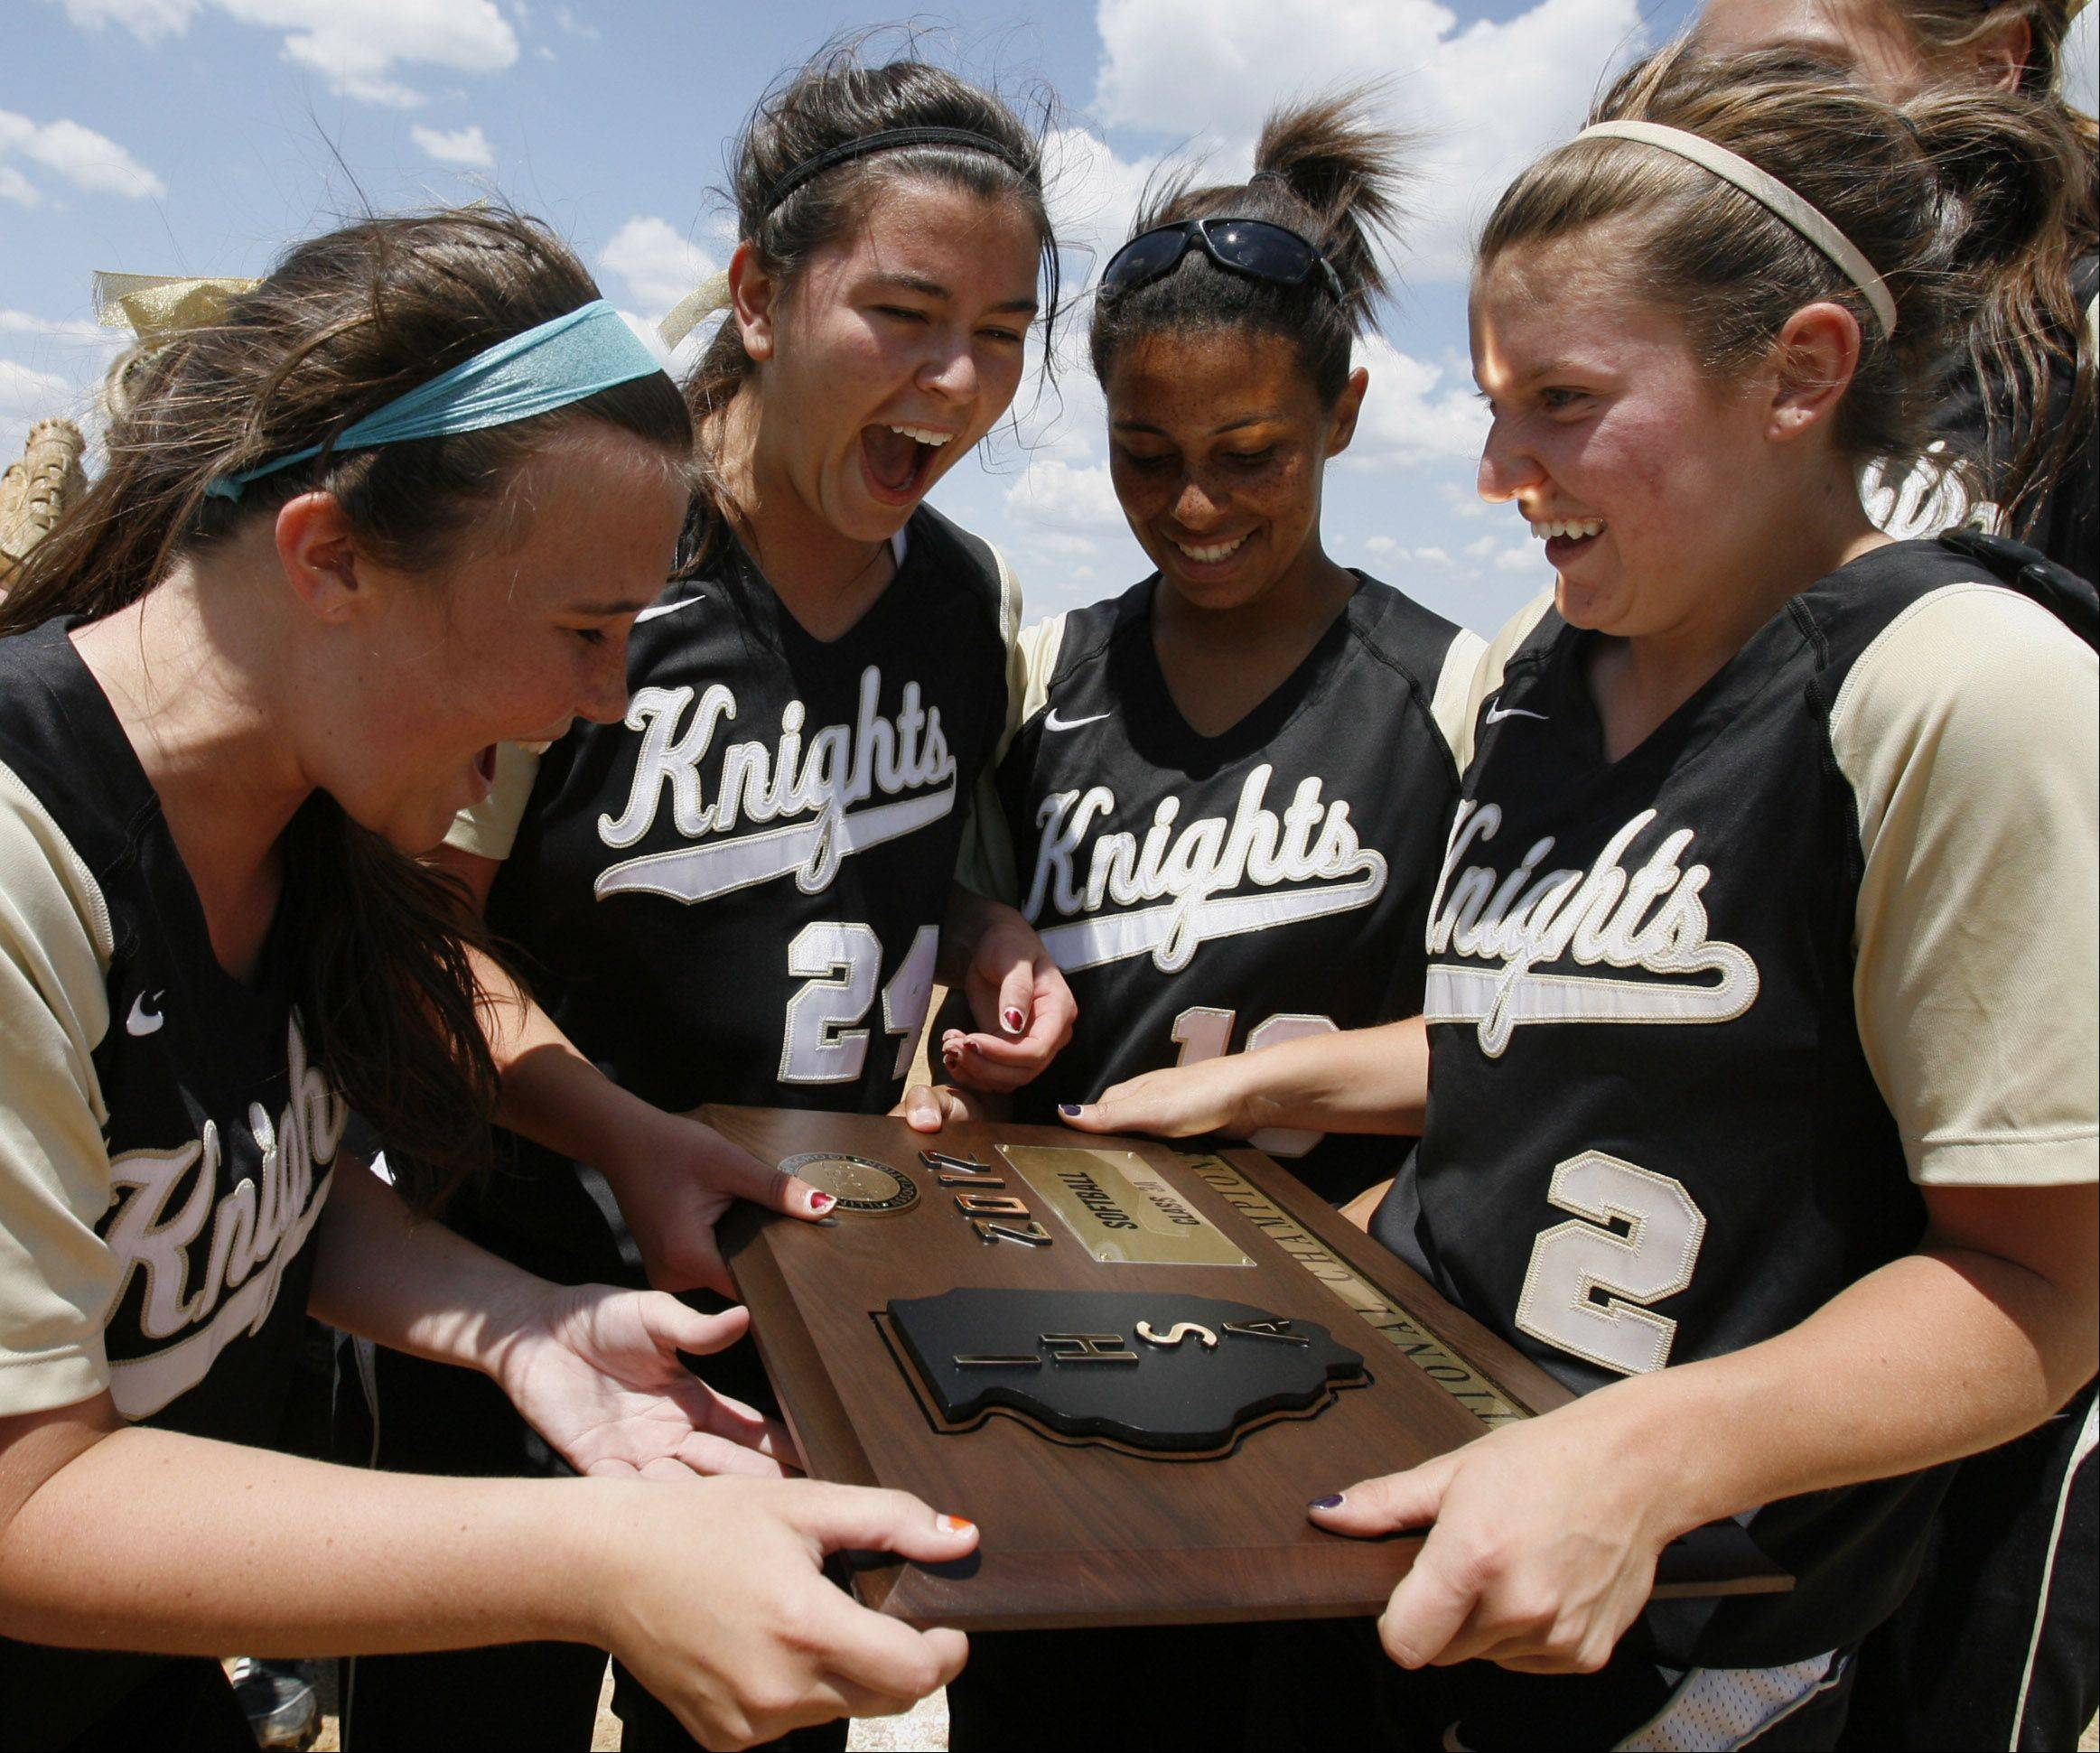 Grayslake North softball team including pitcher Kristina Gandy, second from left, and catcher Brooke Tracy, far right, celebrate winning Class 3A Lakes softball sectional final against Prairie Ridge in Lake Villa on Saturday.